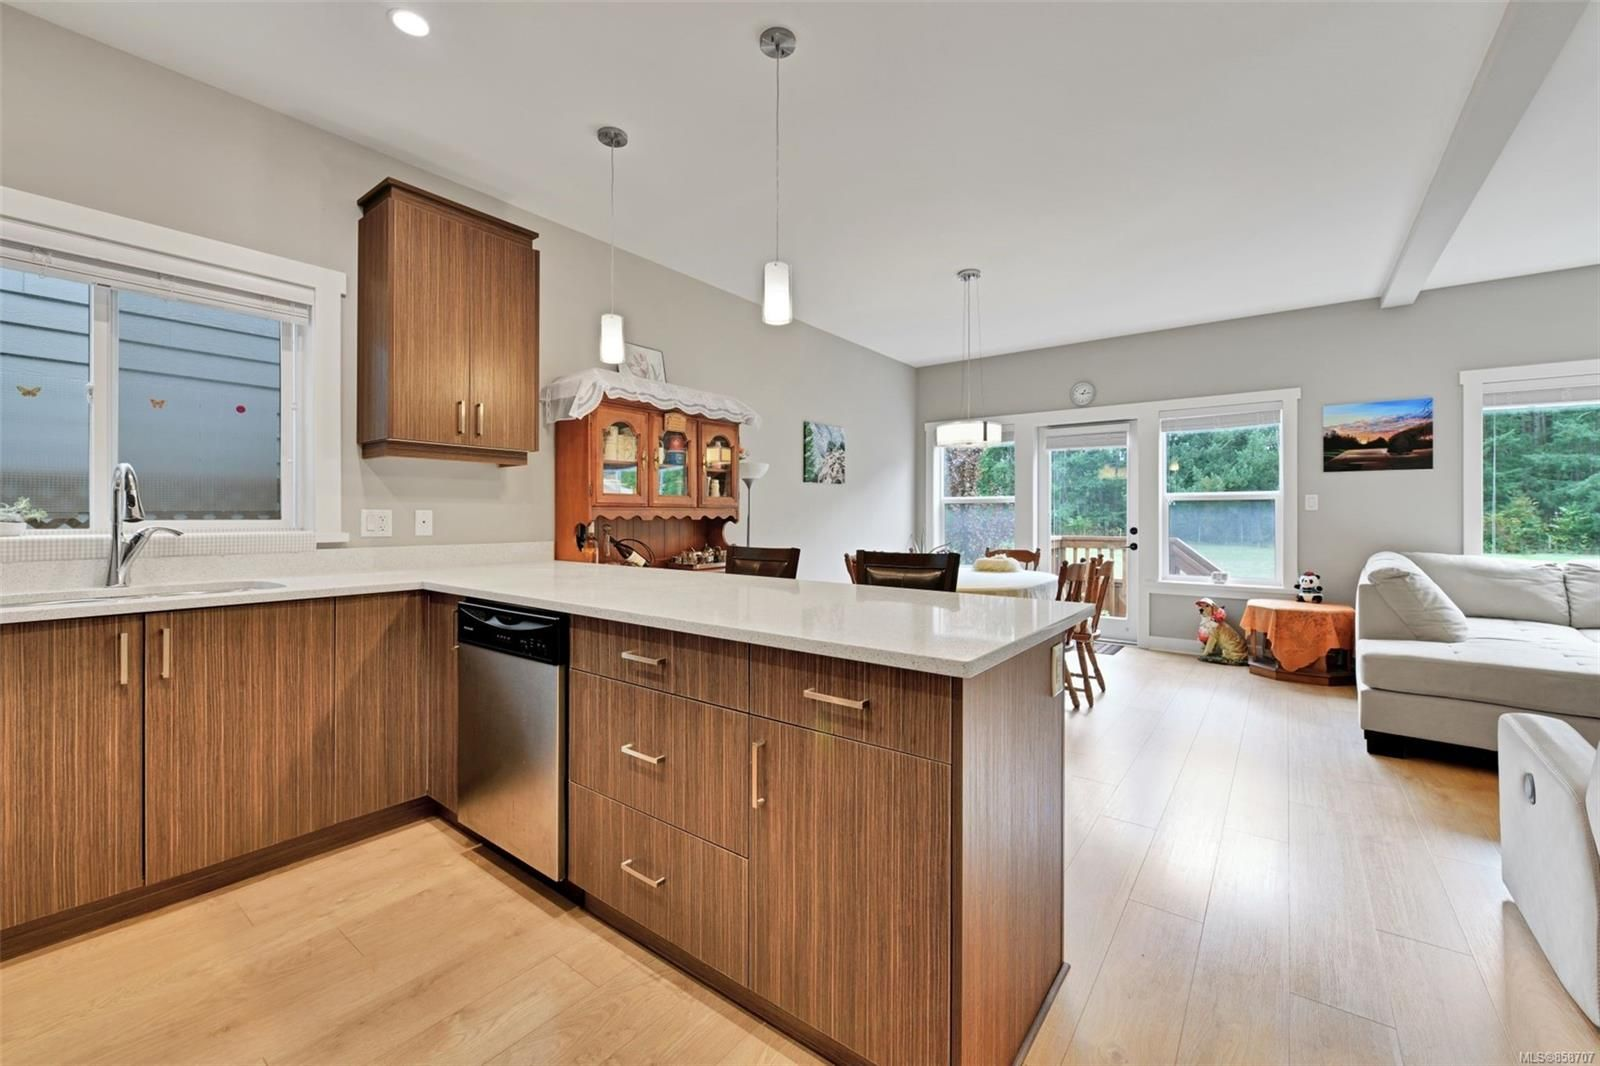 Photo 8: Photos: 1262 McLeod Pl in : La Happy Valley House for sale (Langford)  : MLS®# 858707